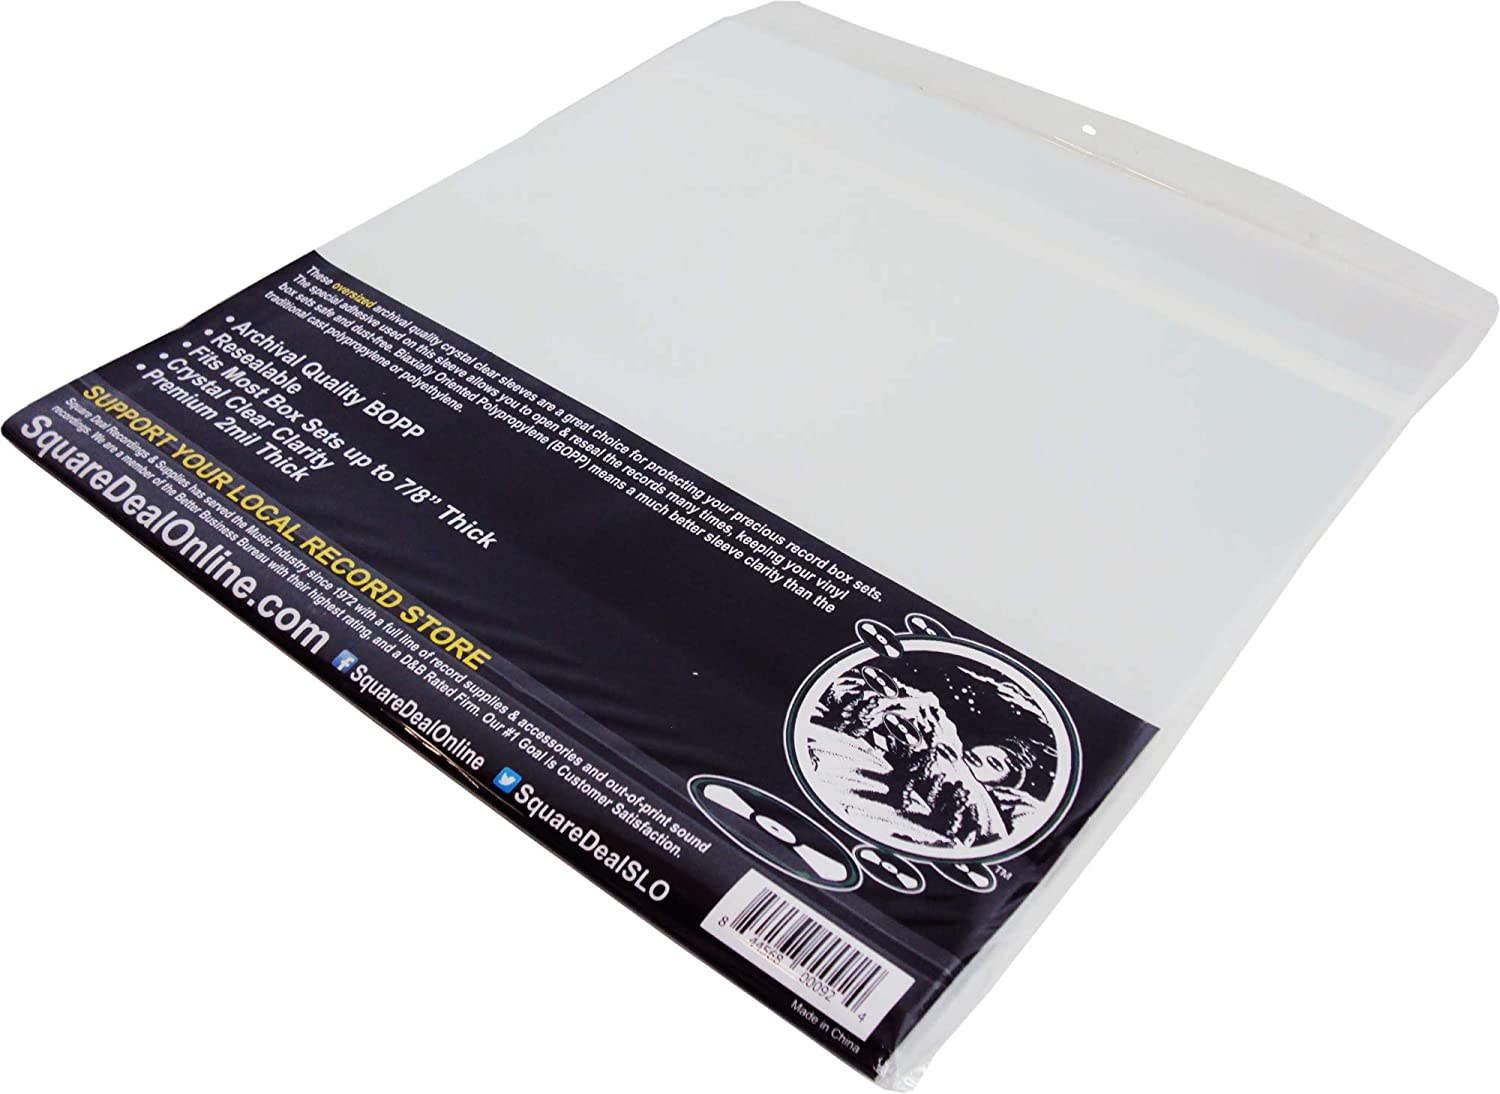 Amazon Com 25 12 Resealable Oversize Record Outer Sleeves Super Clear Premium 2 Mil Thick Archival Quality Bopp 13 7 8 X 13 1 4 1 5 8 Flap Fits Most Box Sets Up To 7 8 Thick 12sb02rsos Electronics